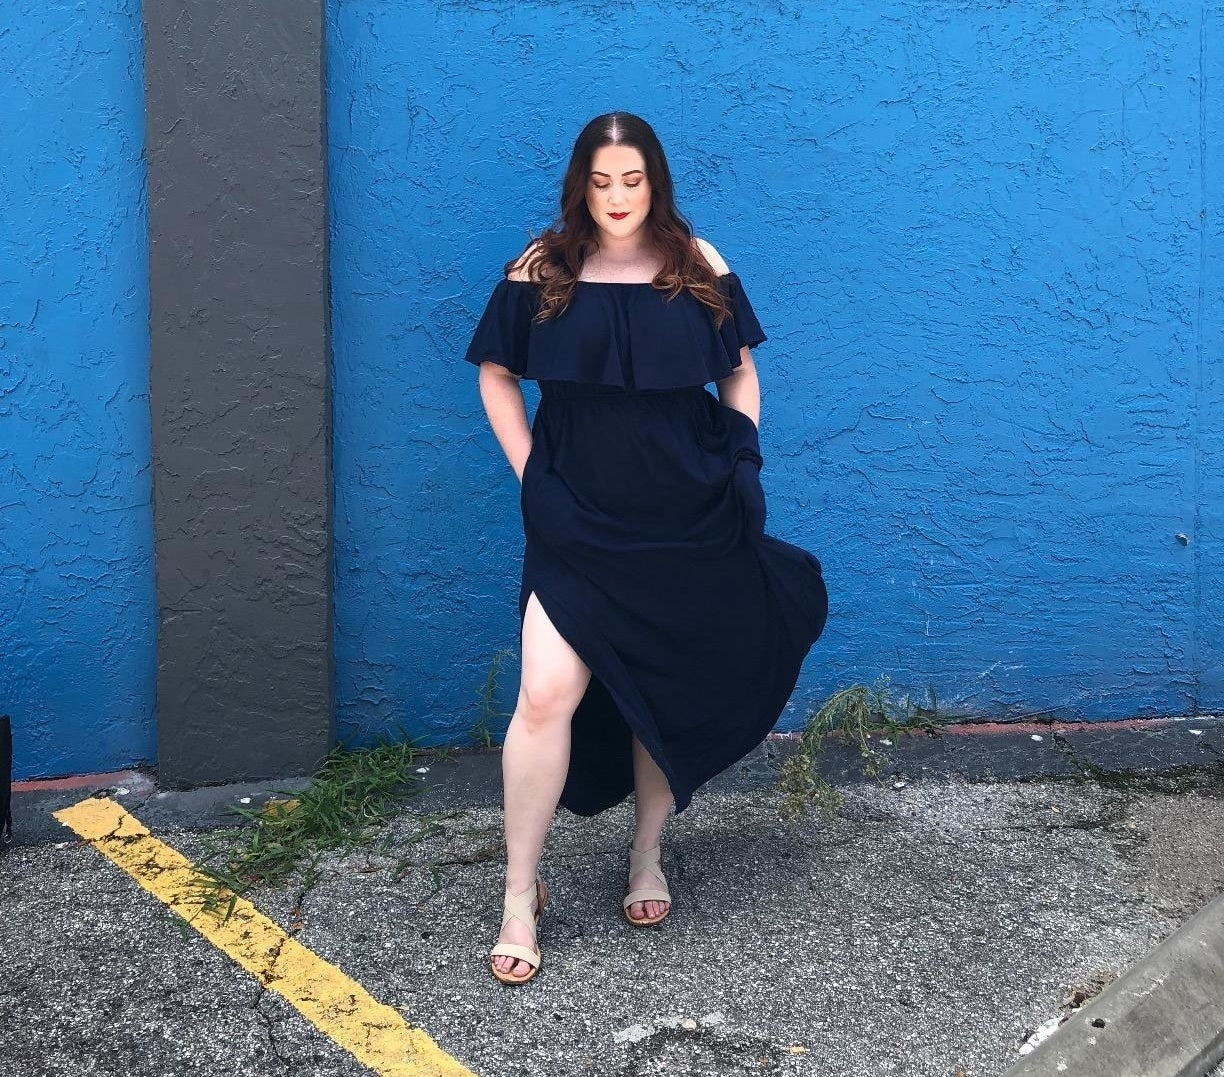 A reviewer modeling the maxi dress and showing off the thigh-high side slit